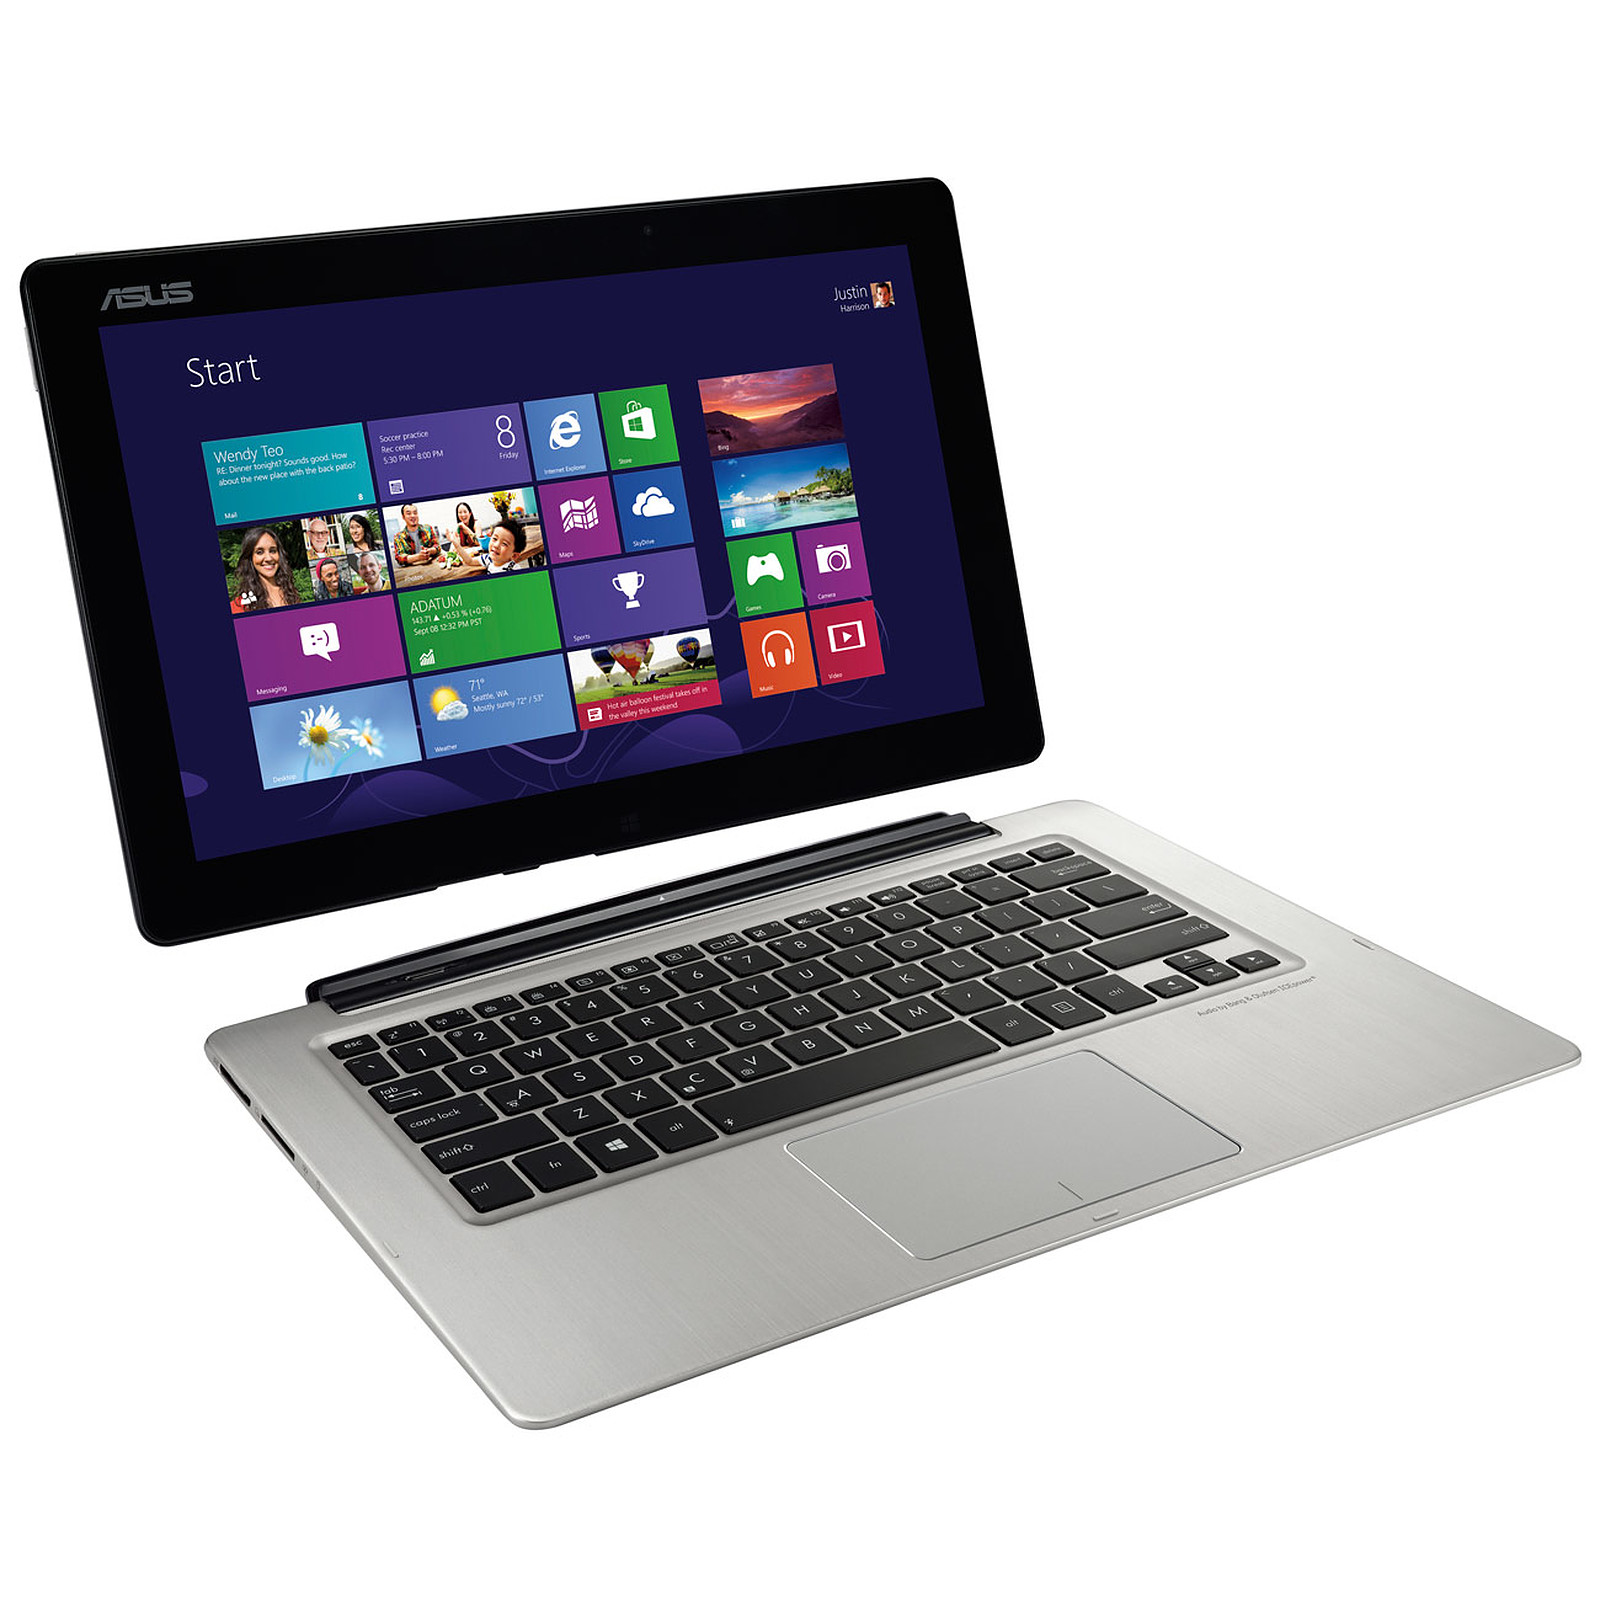 ASUS Transformer Book TX300CA-C4006H + Dock mobile